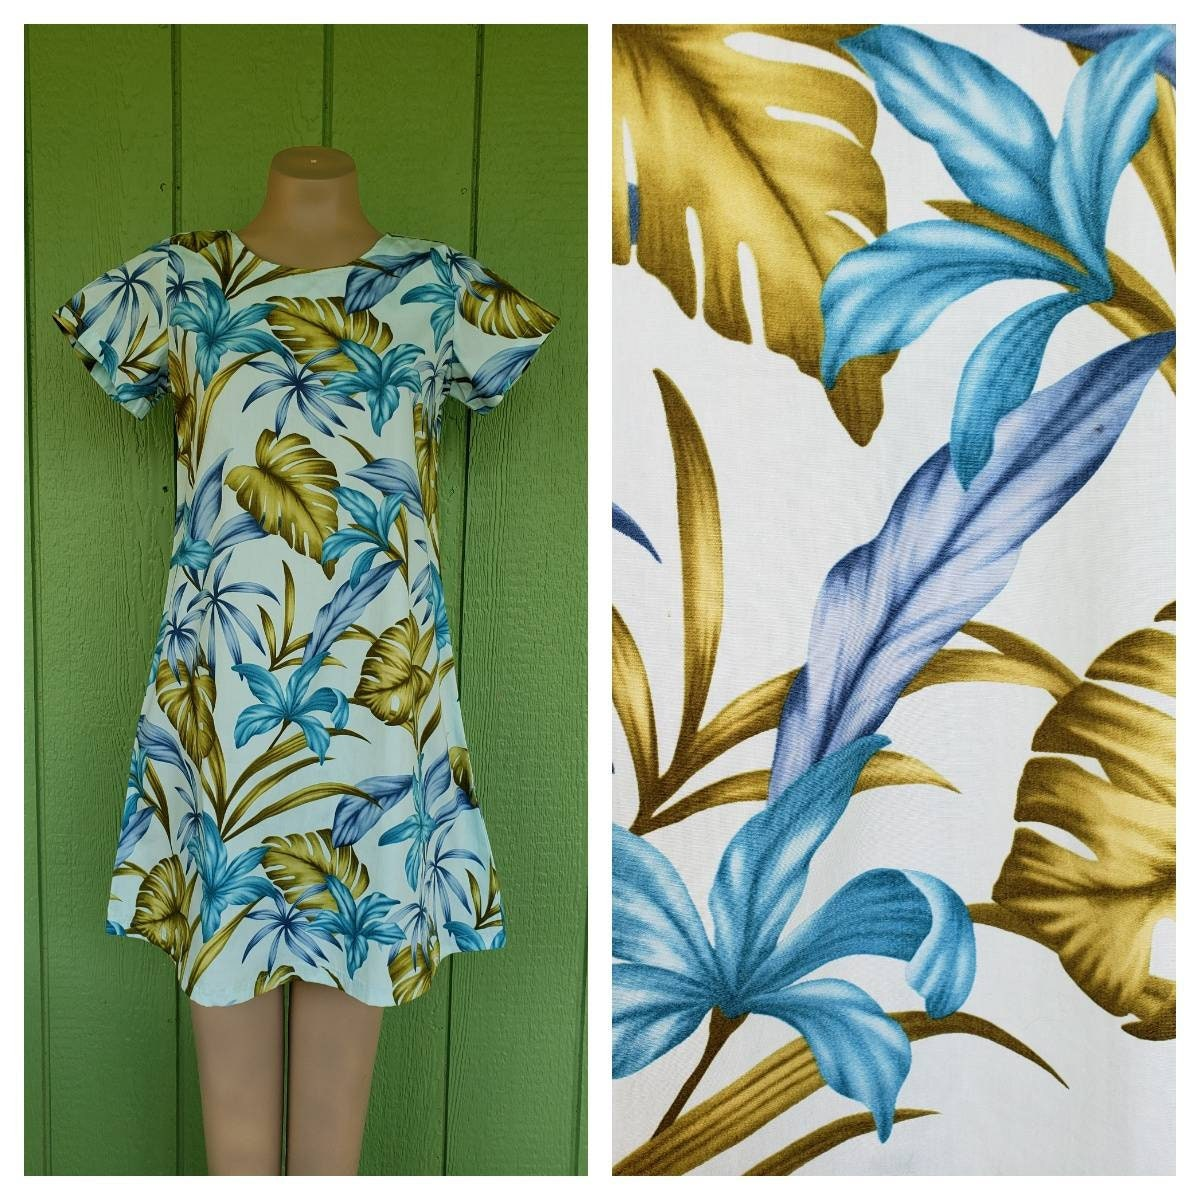 80s Dresses | Casual to Party Dresses Vintage 80s Short Sleeve Hawaiian Print Dress By Bishop Street Apparel $7.00 AT vintagedancer.com